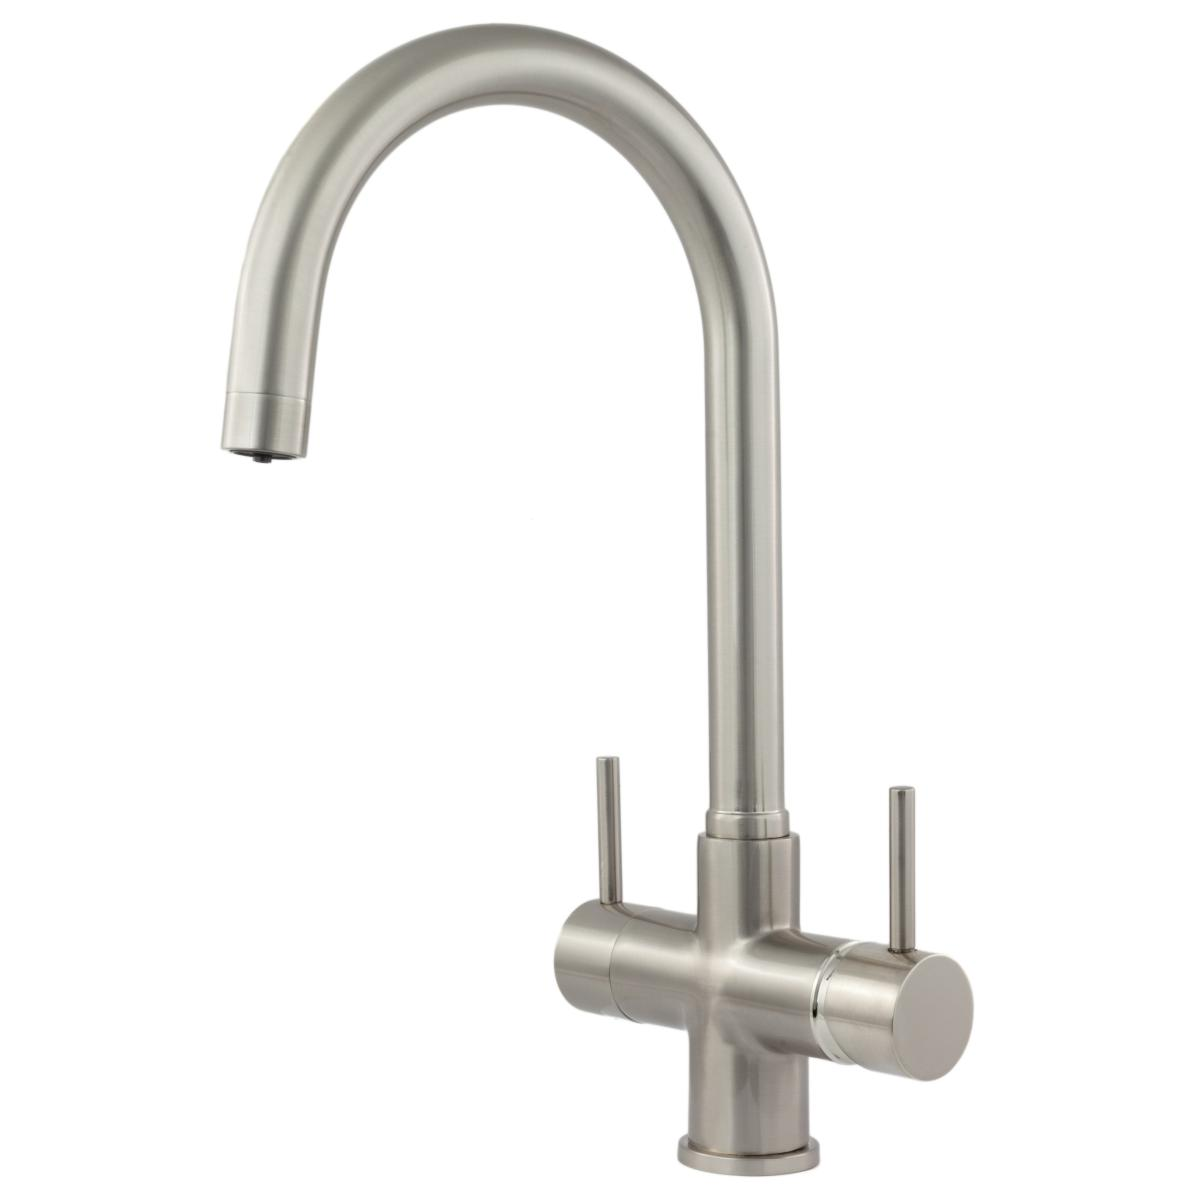 Verona 3-Way 2 lever Kitchen Filter Tap Brushed Steel